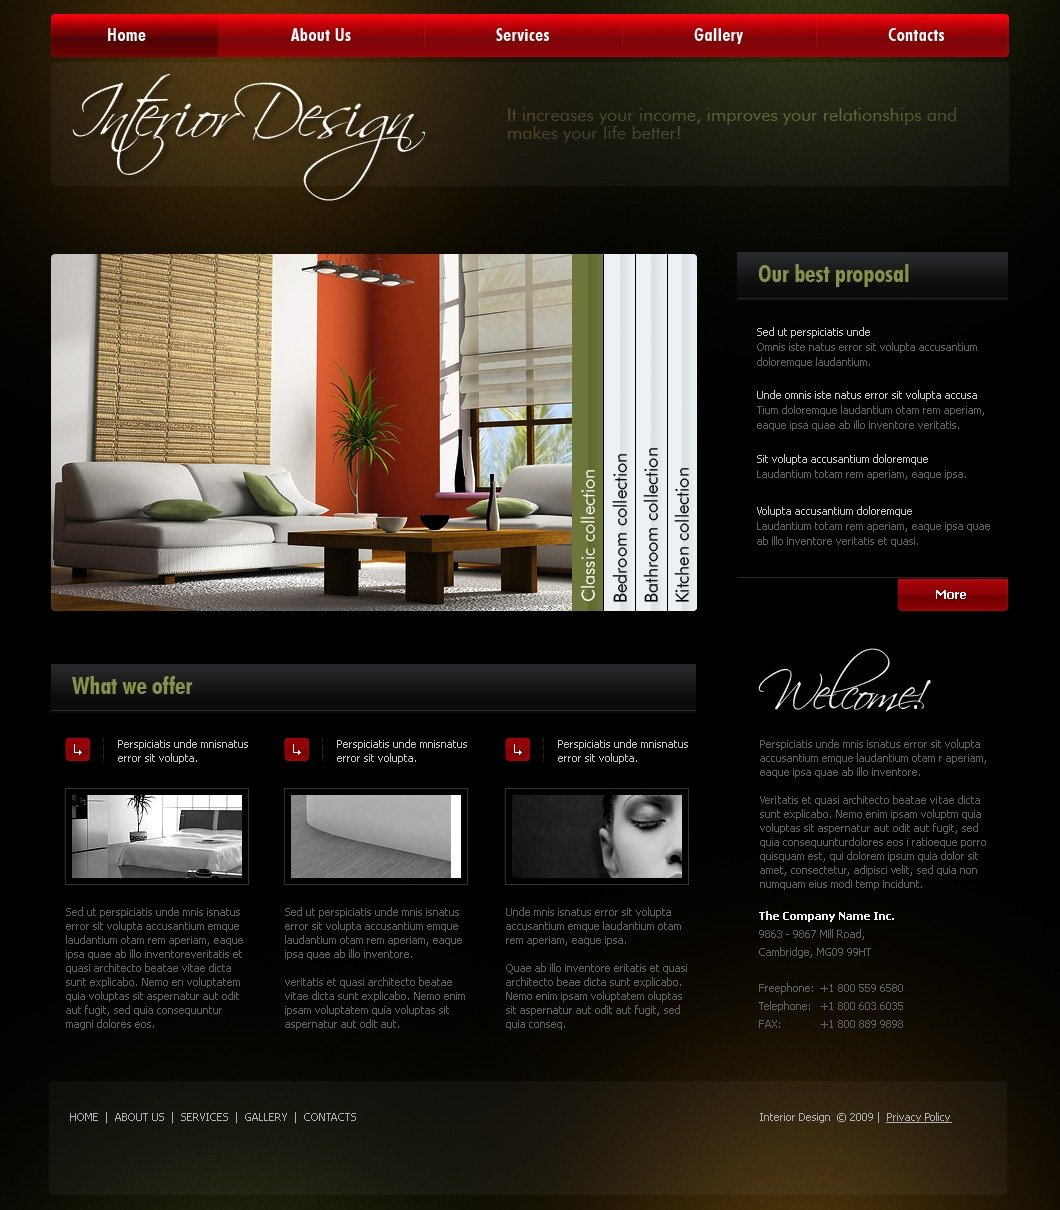 Interior design website template 23574 for Interior design sites